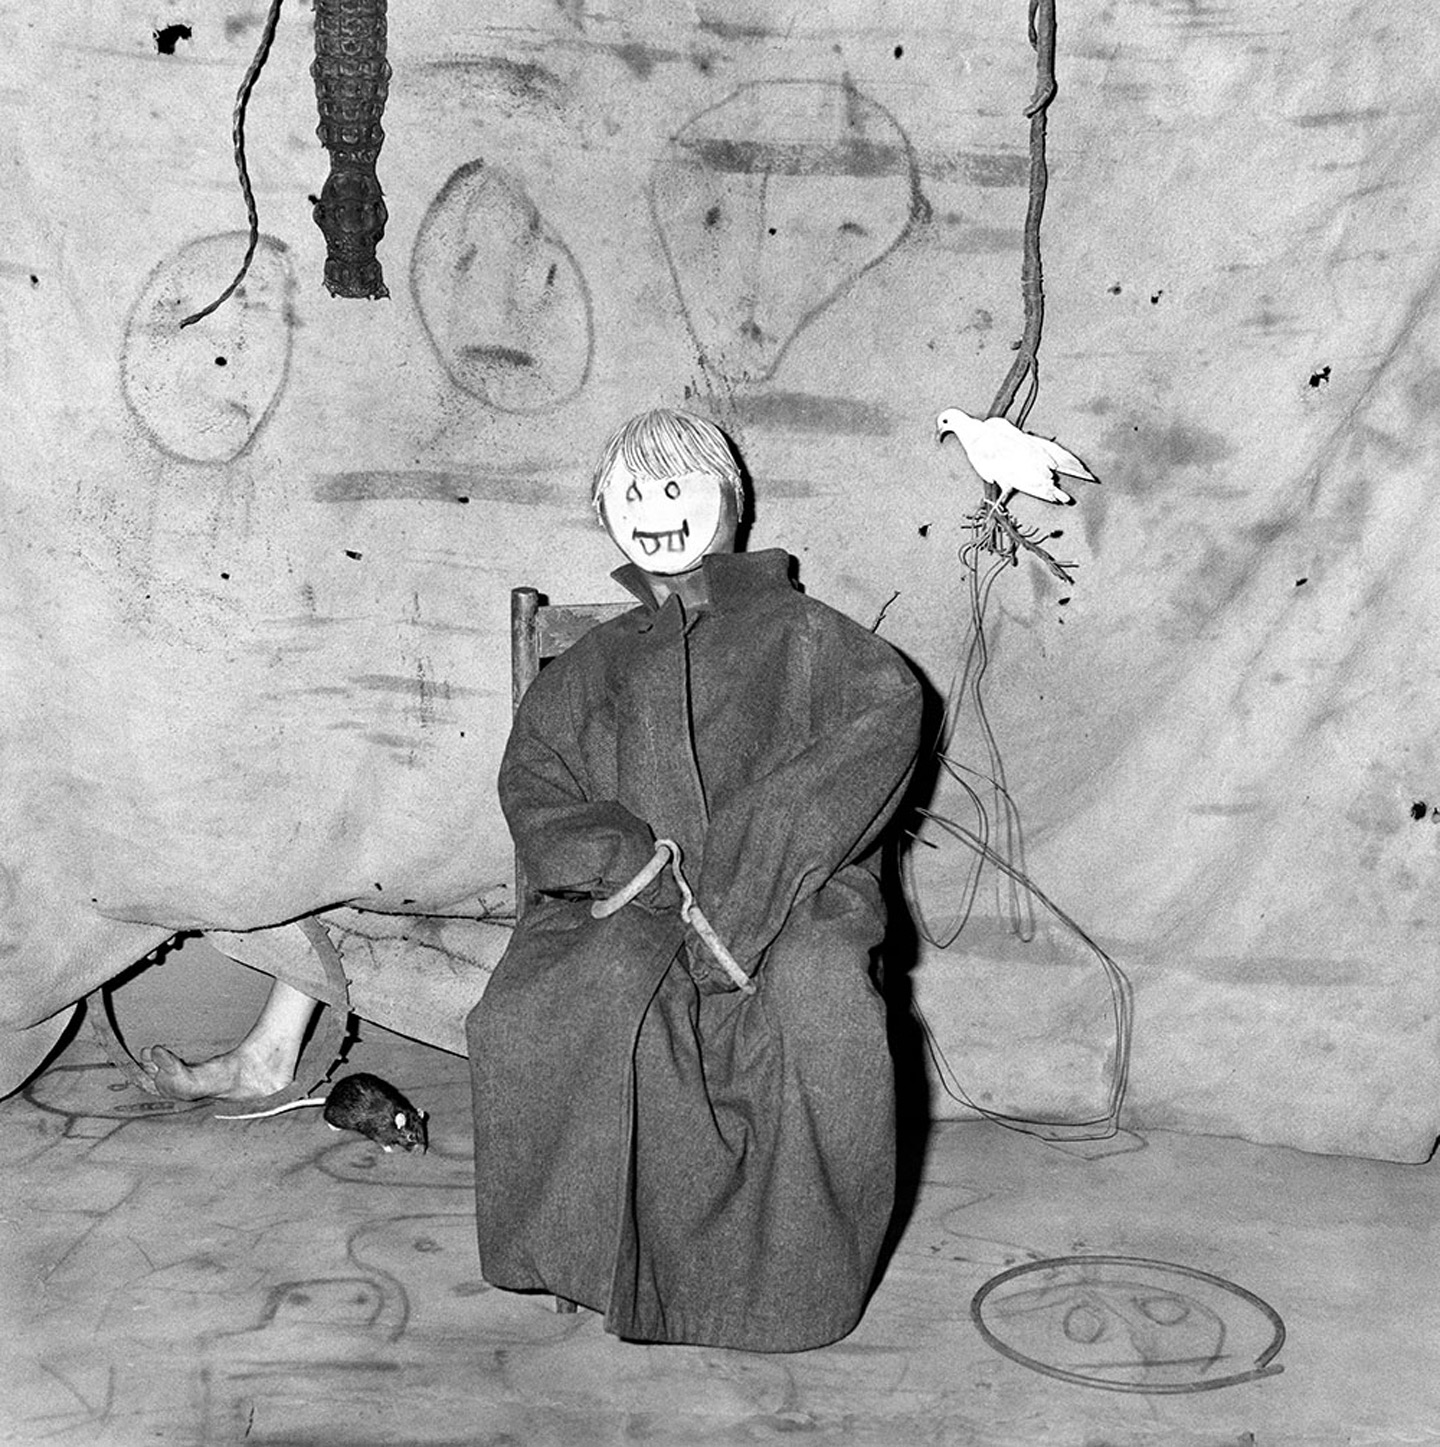 Nazraeli Press Six by Six (6 x 6) Subscription Series: Set 6 (of 6), Limited Edition (with 6 Prints): Roger Ballen: Appearances, Disappearances, Reappearances; Mike Brodie: August 29th–September 8th 2012, Oakland, CA–Oakland, CA, United States; Jim Goldberg: Ruby Every Fall; Katy Grannan: The Glint of Light on Broken Glass; Idris Khan: Church Walk; Marilyn Minter: Florida 1969